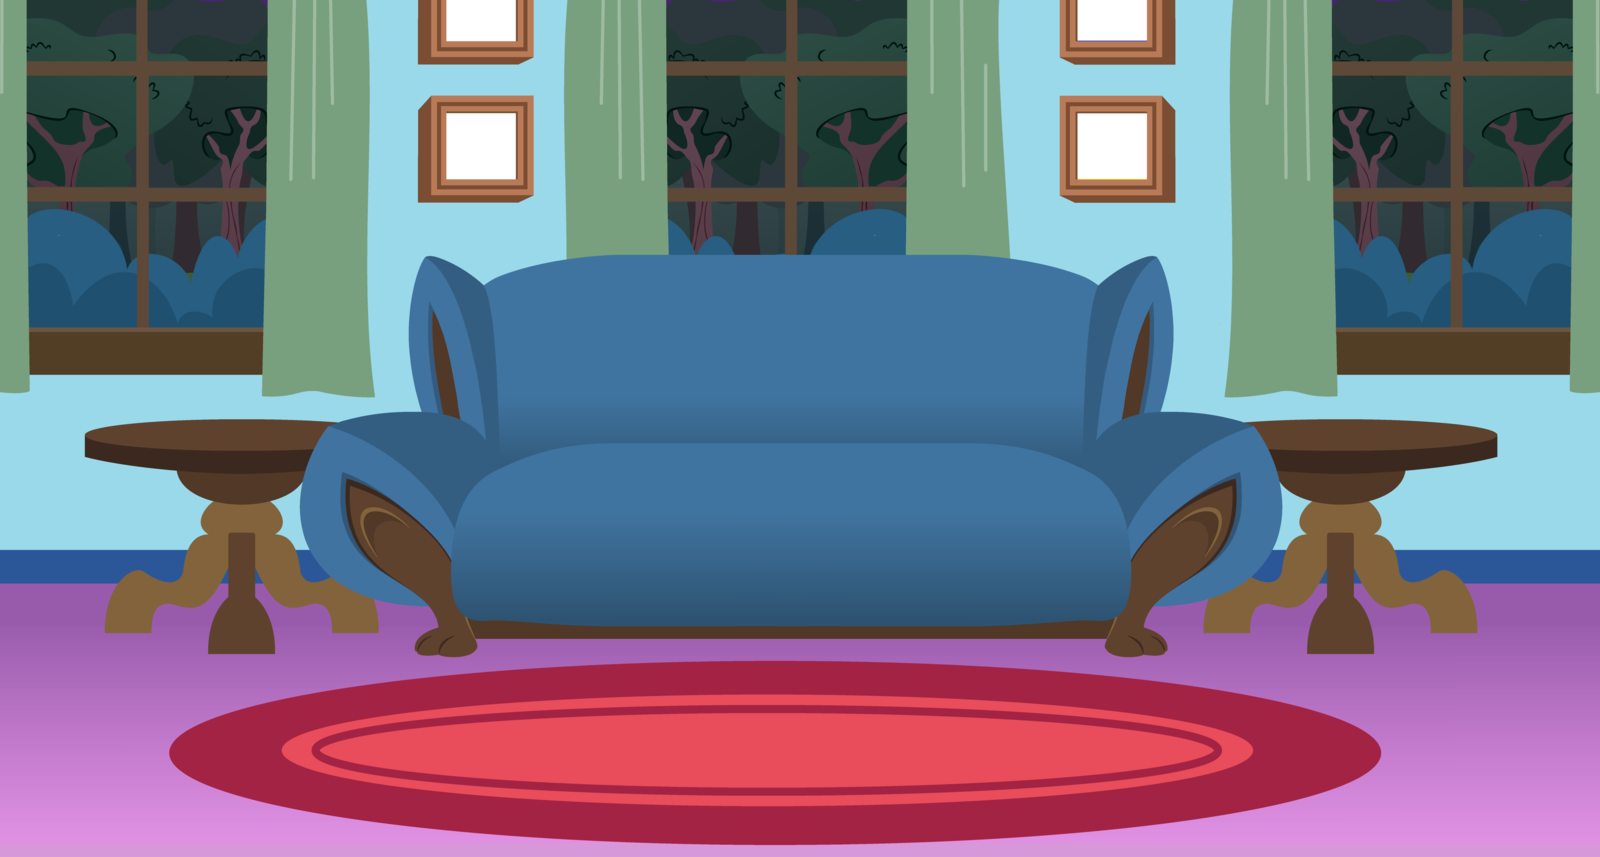 The Kitchen clipart living room Download 13010 Room Free Ideas